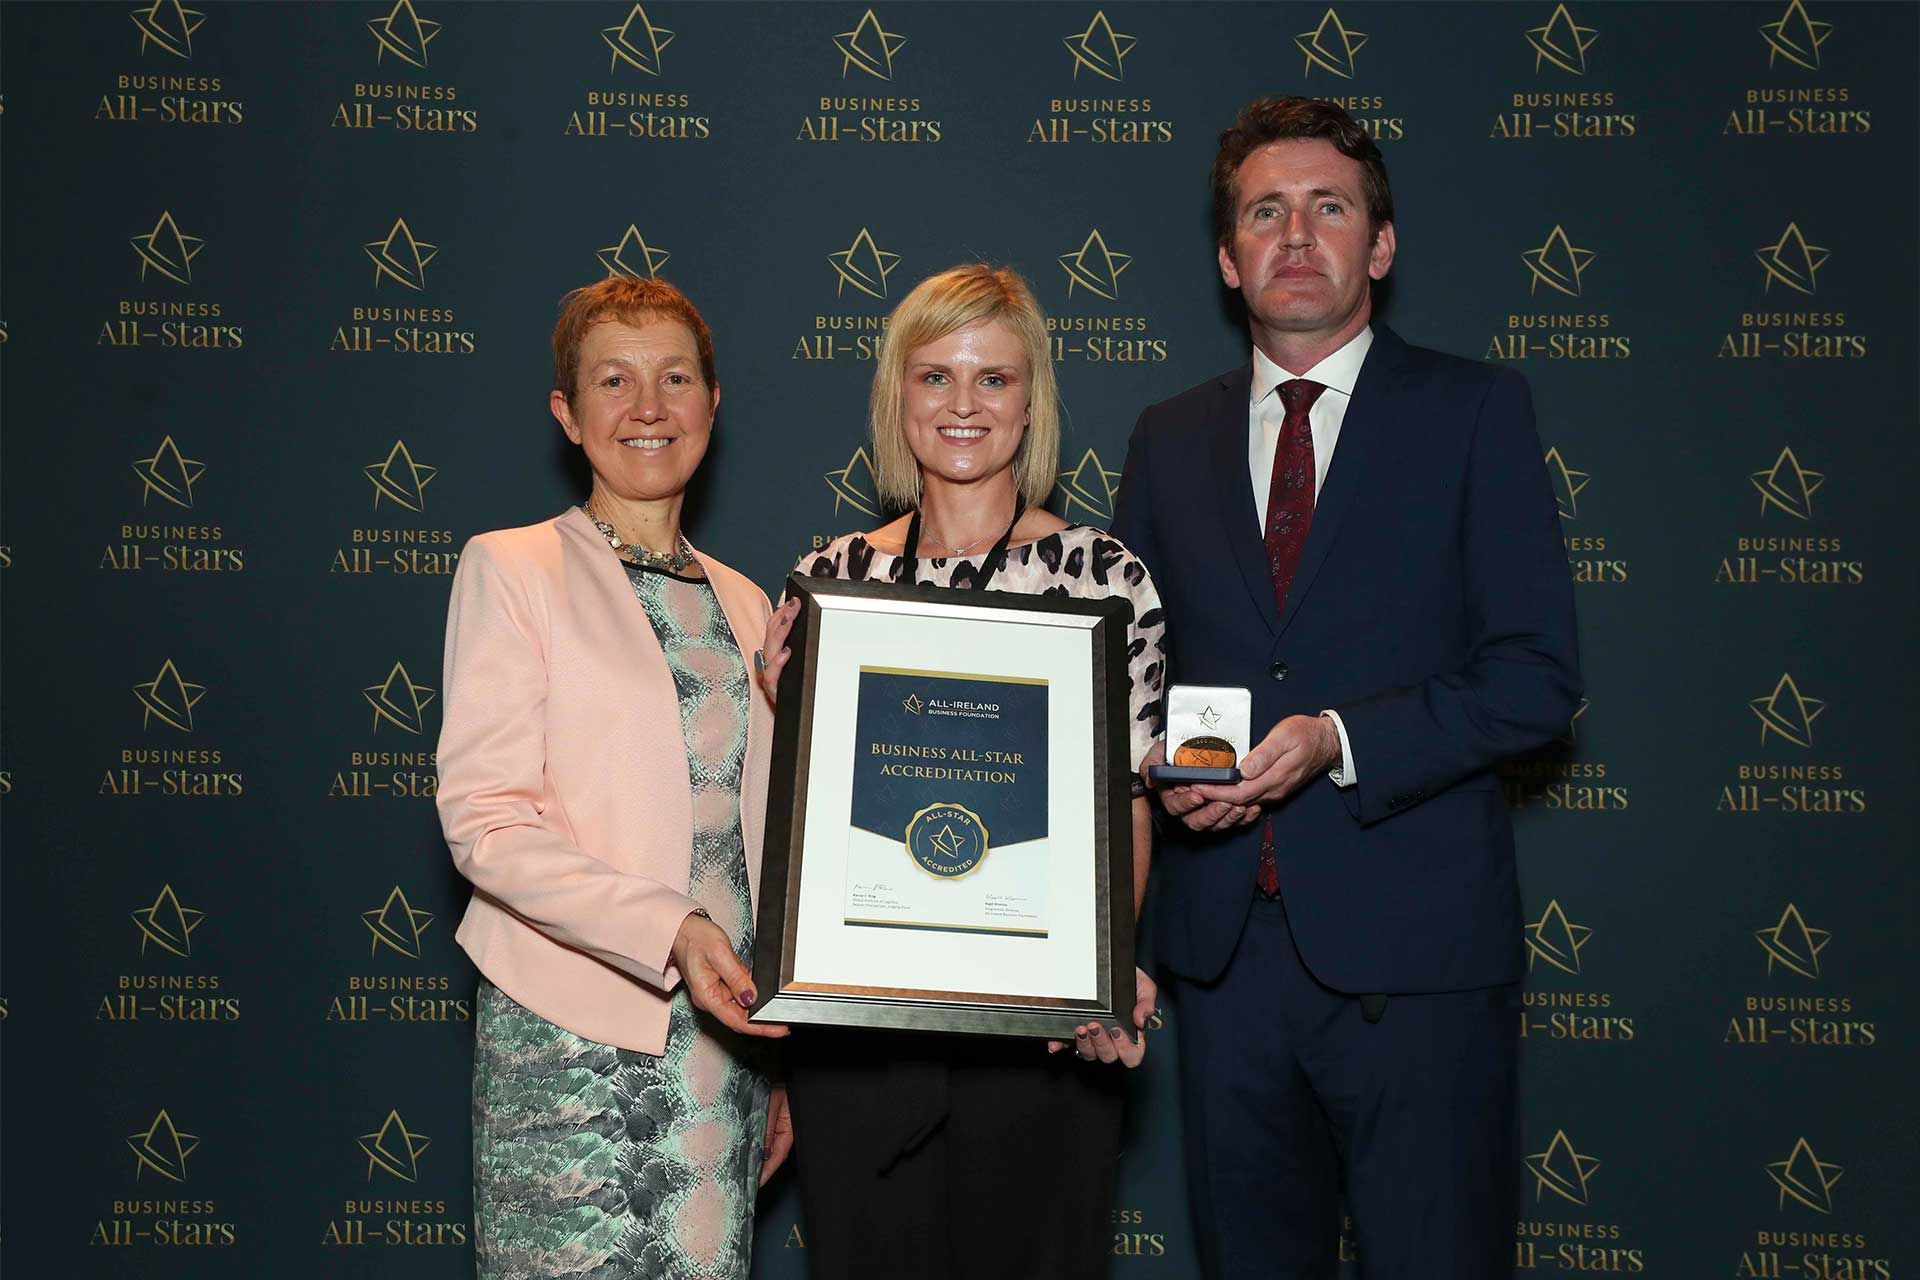 Aisling Griffin - Treetop Studio receiving Business All-Star Accreditation at Croke Park from Dr Briga Hynes, Kemmy Business School, University of Limerick and Senator Aodhán Ó Ríordáin, Spokesperson on Education and Skills, Gaeilge and the Gaeltacht.